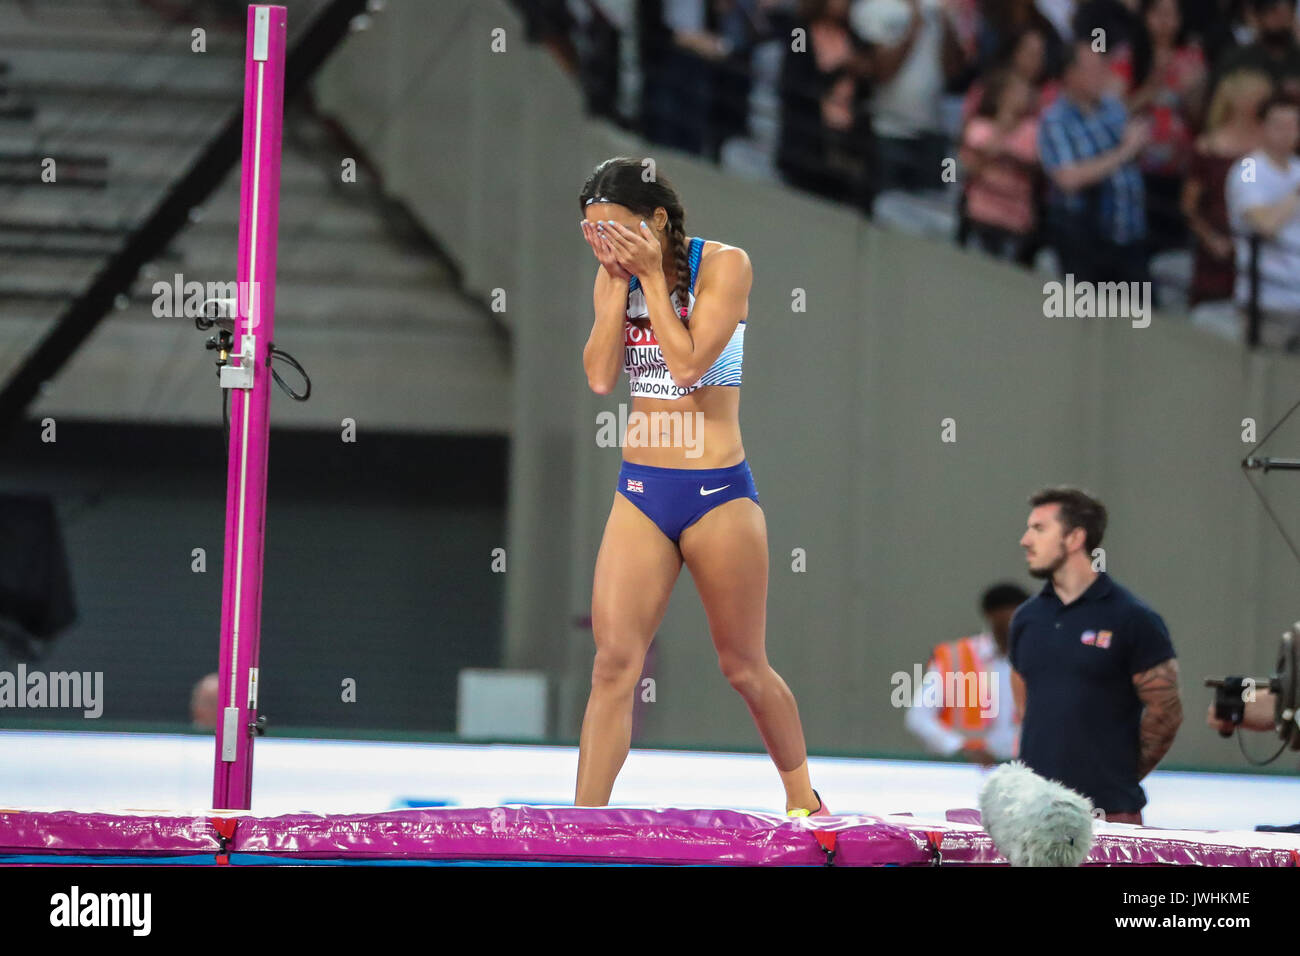 Katarina Johnson-Thompson, Great Britain, goes out of the women's high jump final on day nine of the IAAF London 2017 world Championships at the London Stadium. © Paul Davey. - Stock Image